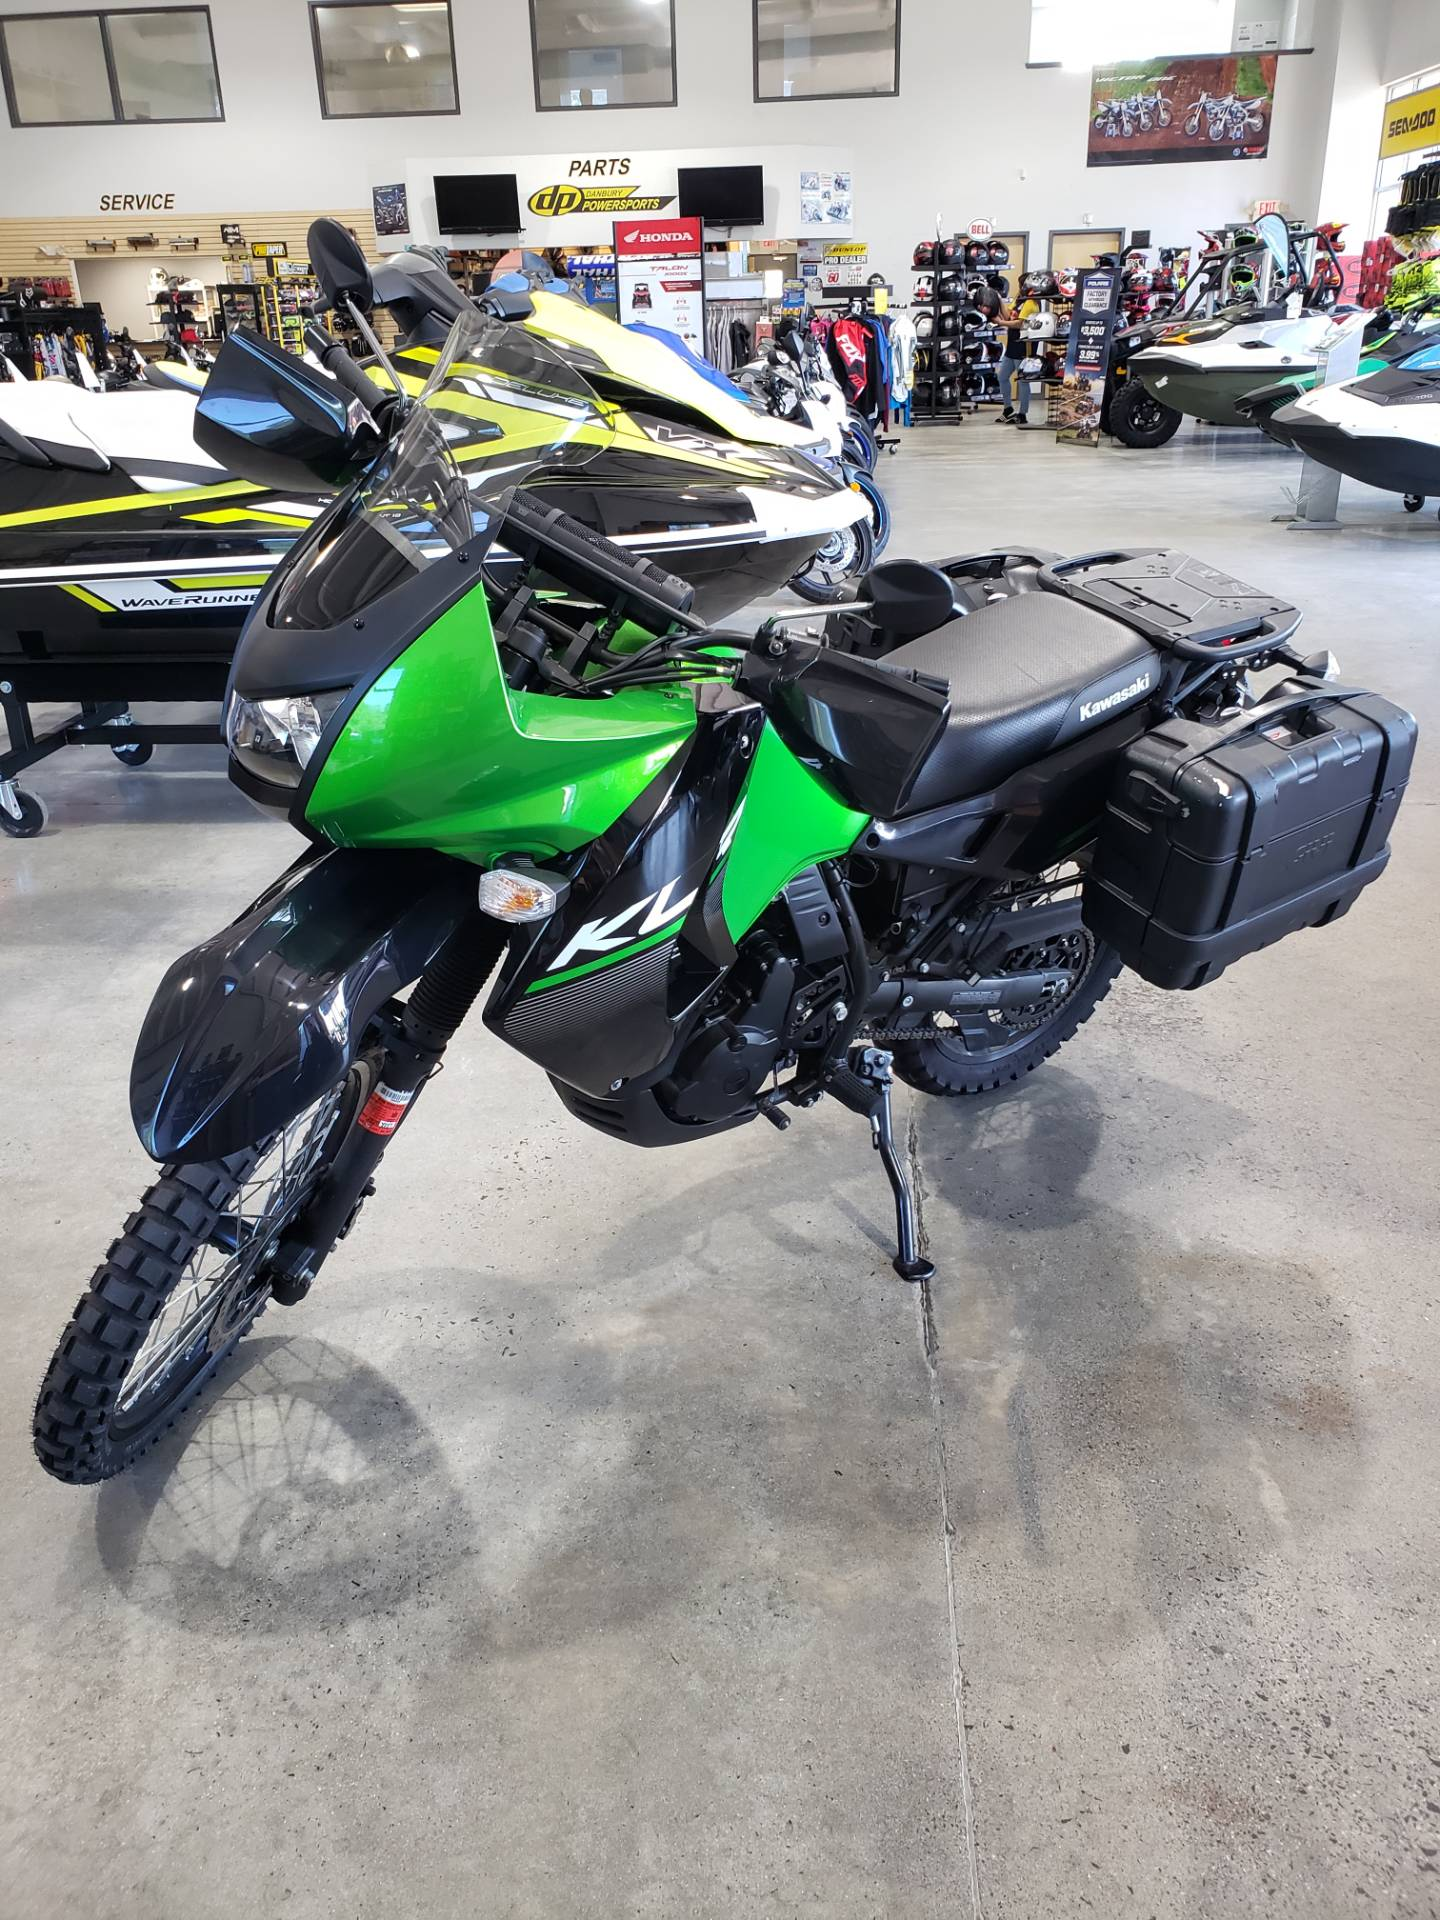 2015 Kawasaki KLR 650 in Danbury, Connecticut - Photo 2